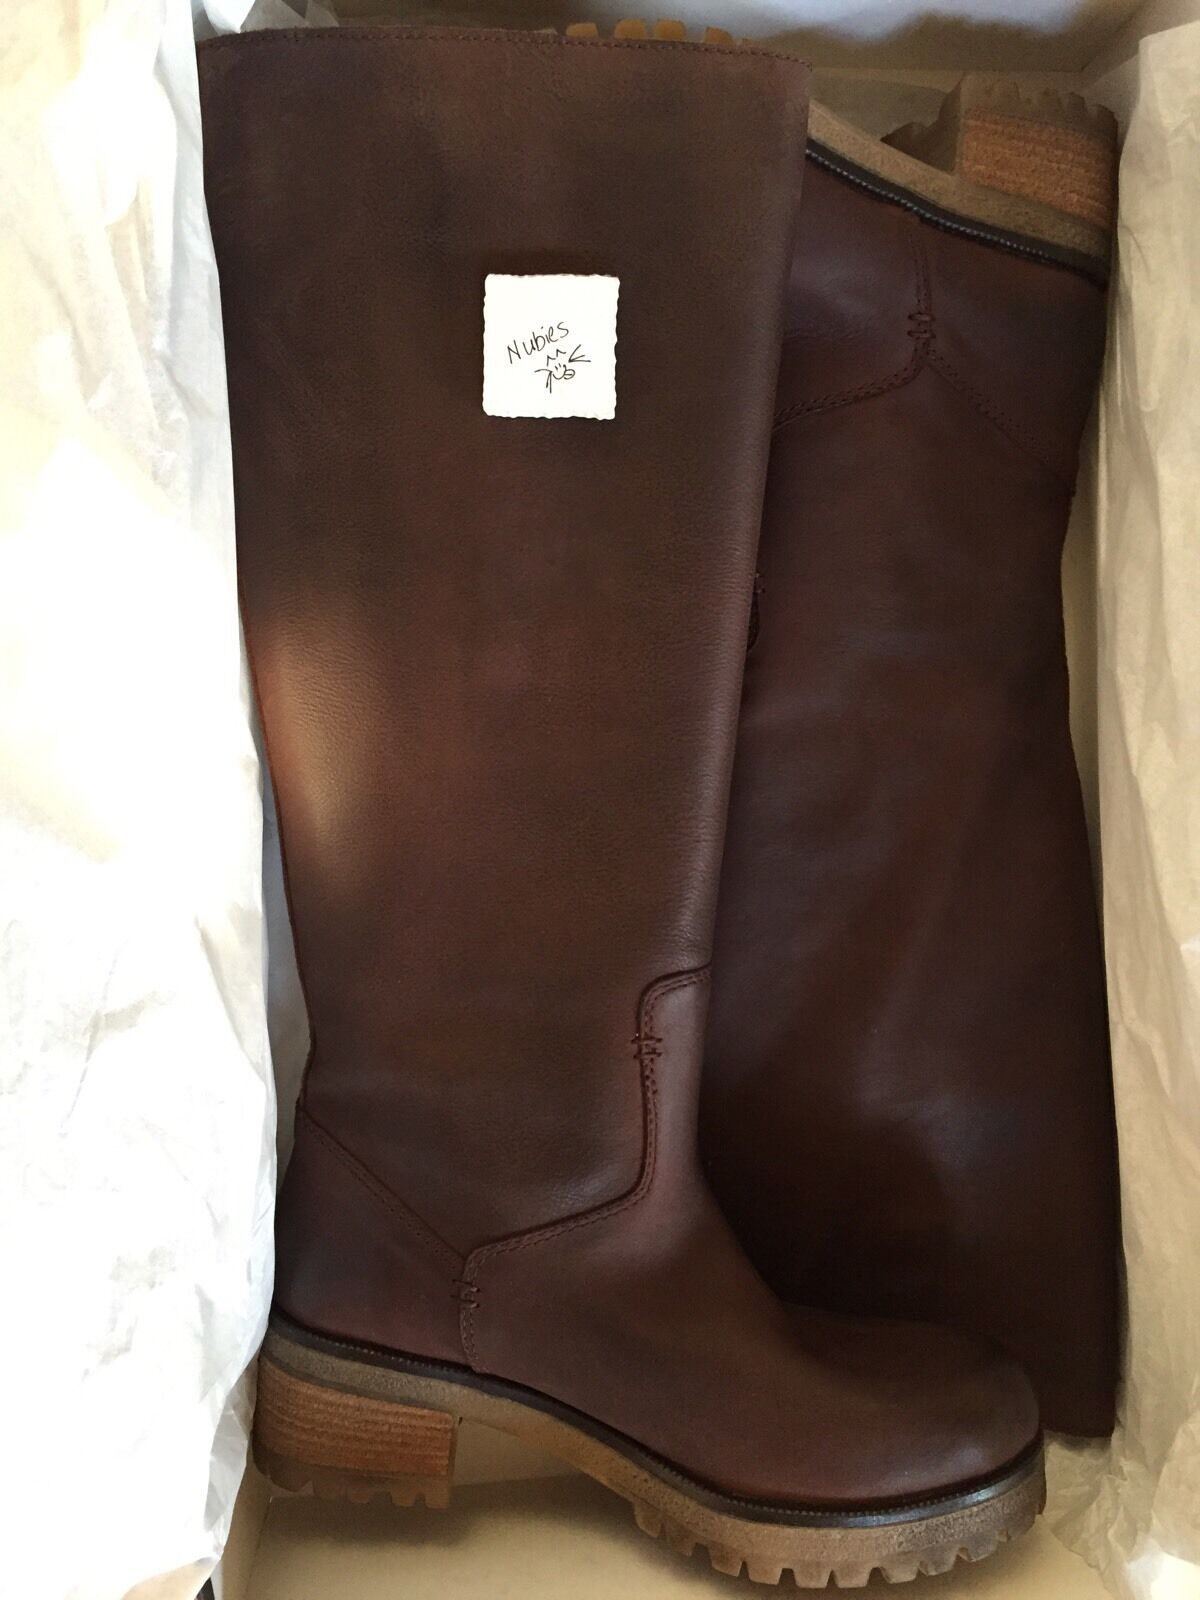 535 New Sz 7 Barneys New York Dark Brown Ruby Leather Lug Soles Pull On Boots